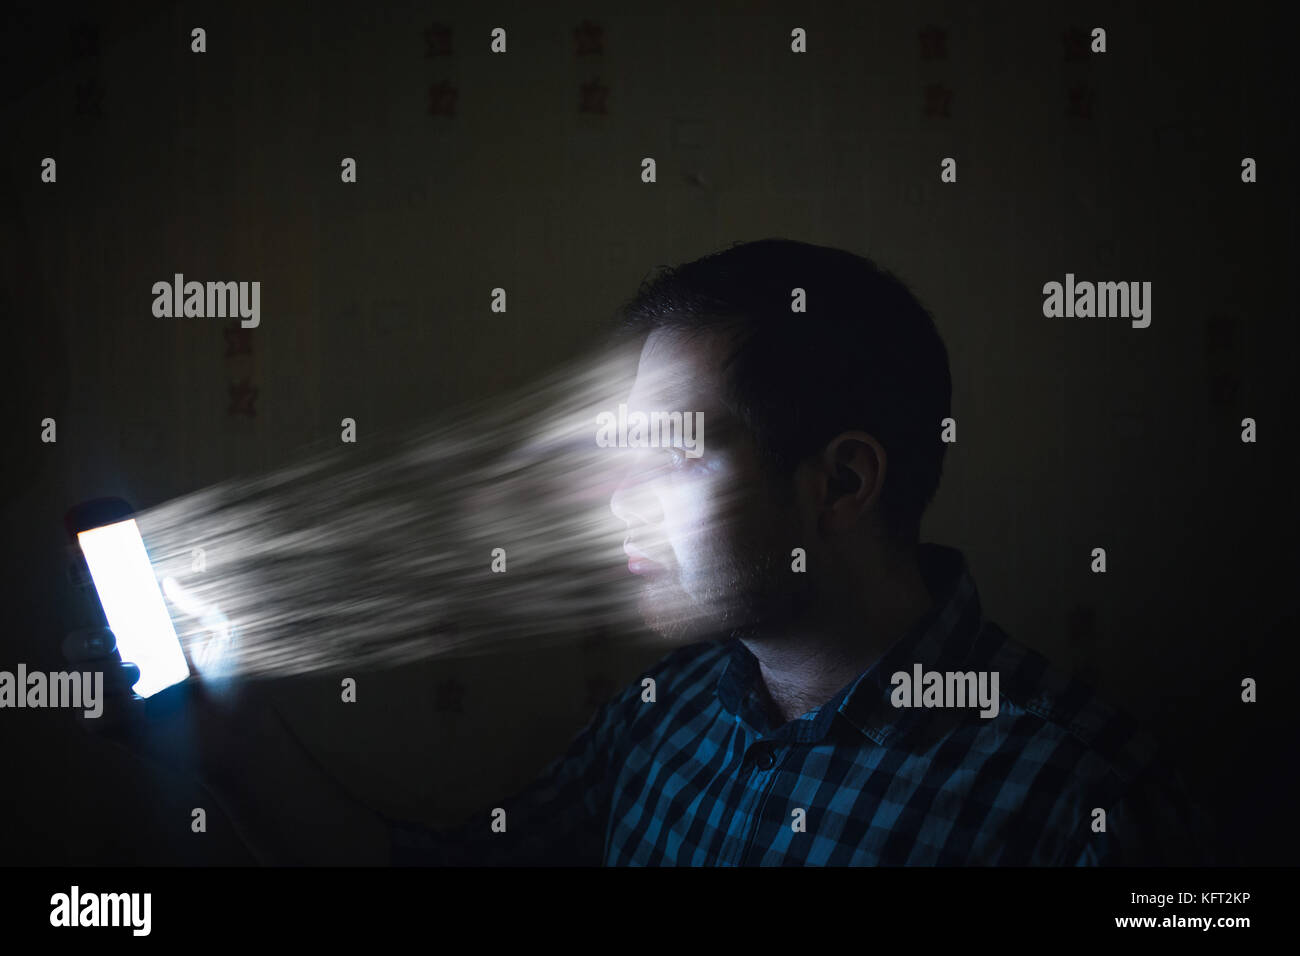 Concept Internet of dependence, submission. Man sucked into a phone. The man's face is transferred to the smartphone - Stock Image